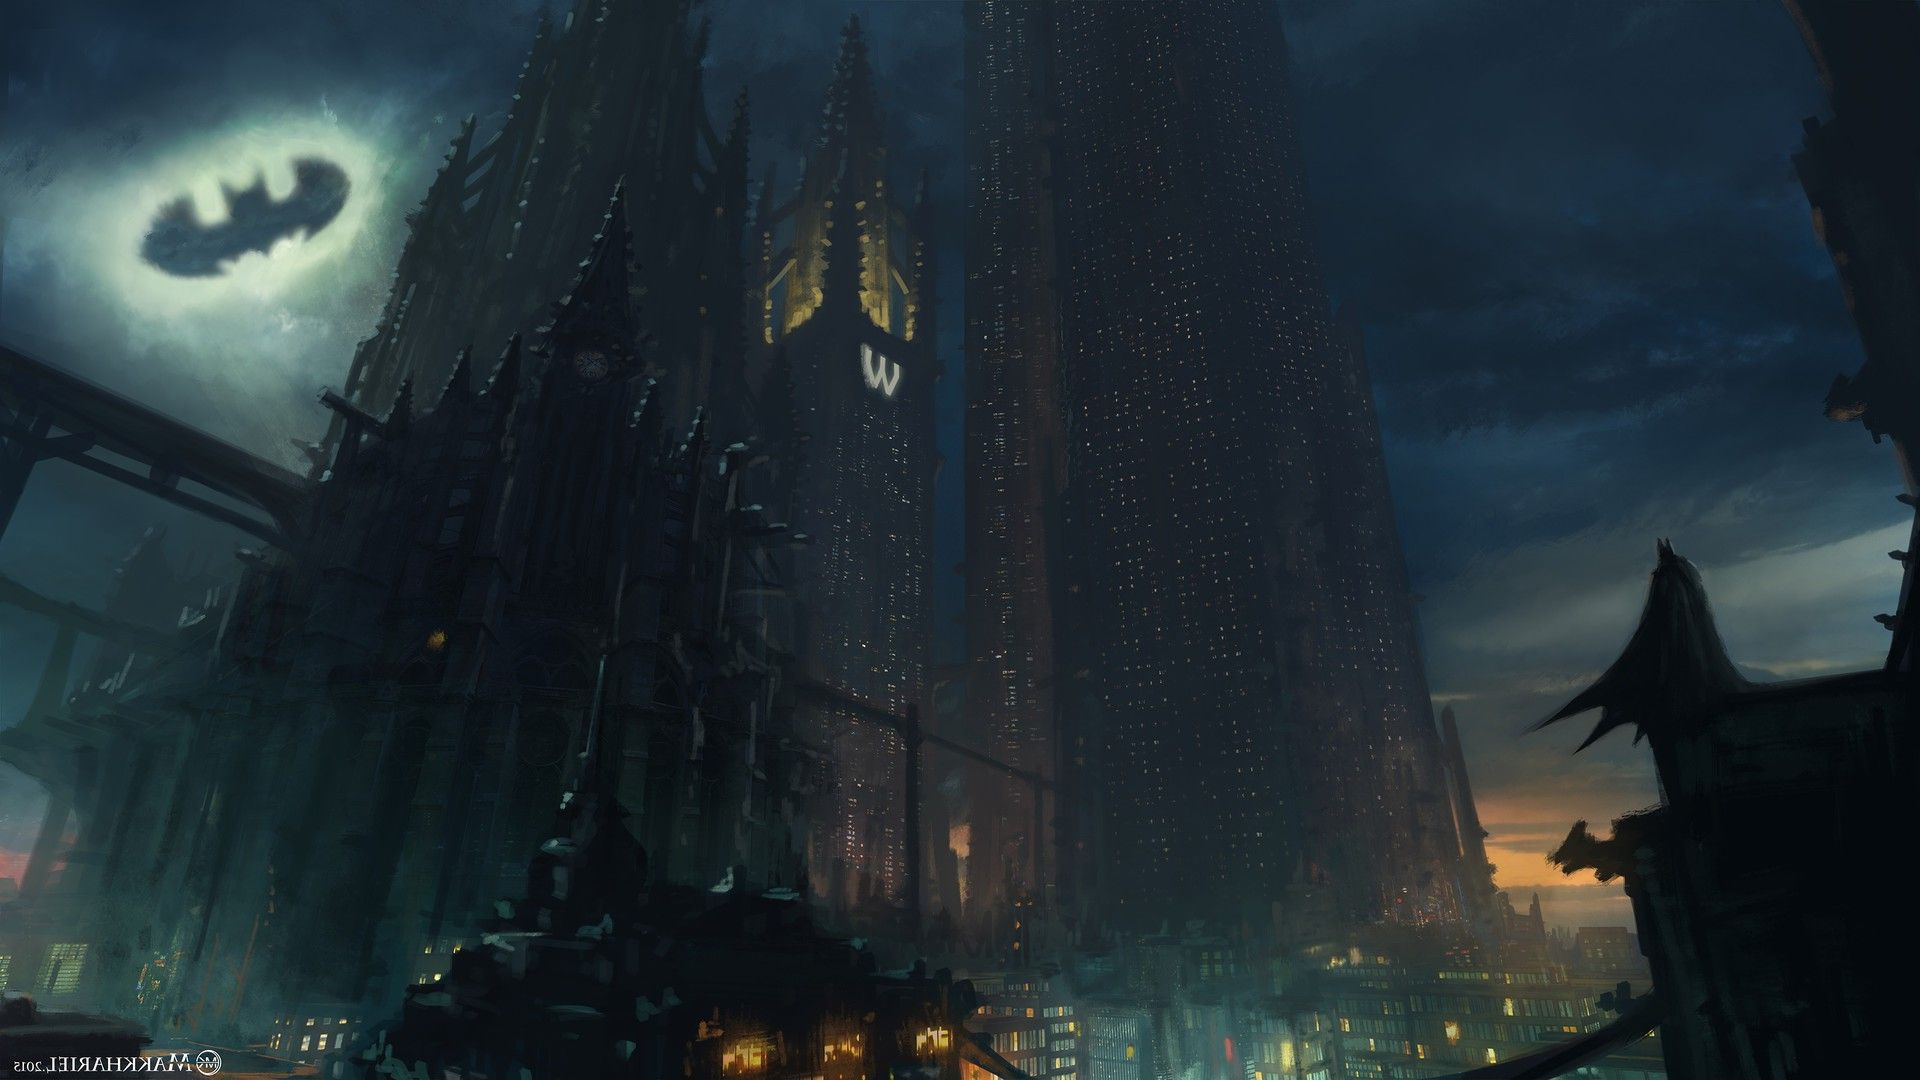 5 Gotham City HD Wallpapers and Background Images Download for 1920x1080